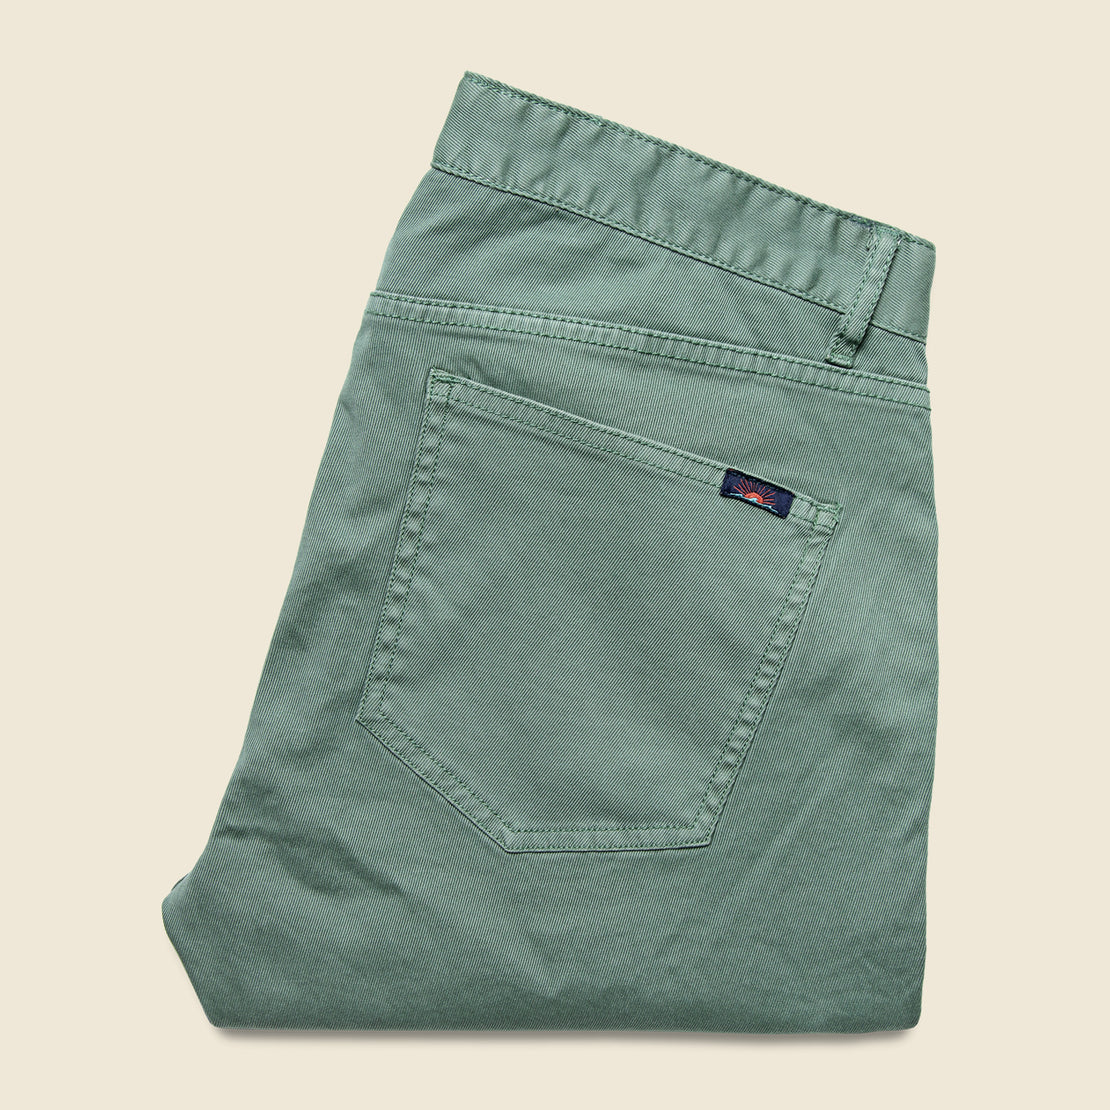 Cavalry Jean - Surplus Green - Faherty - STAG Provisions - Pants - Twill